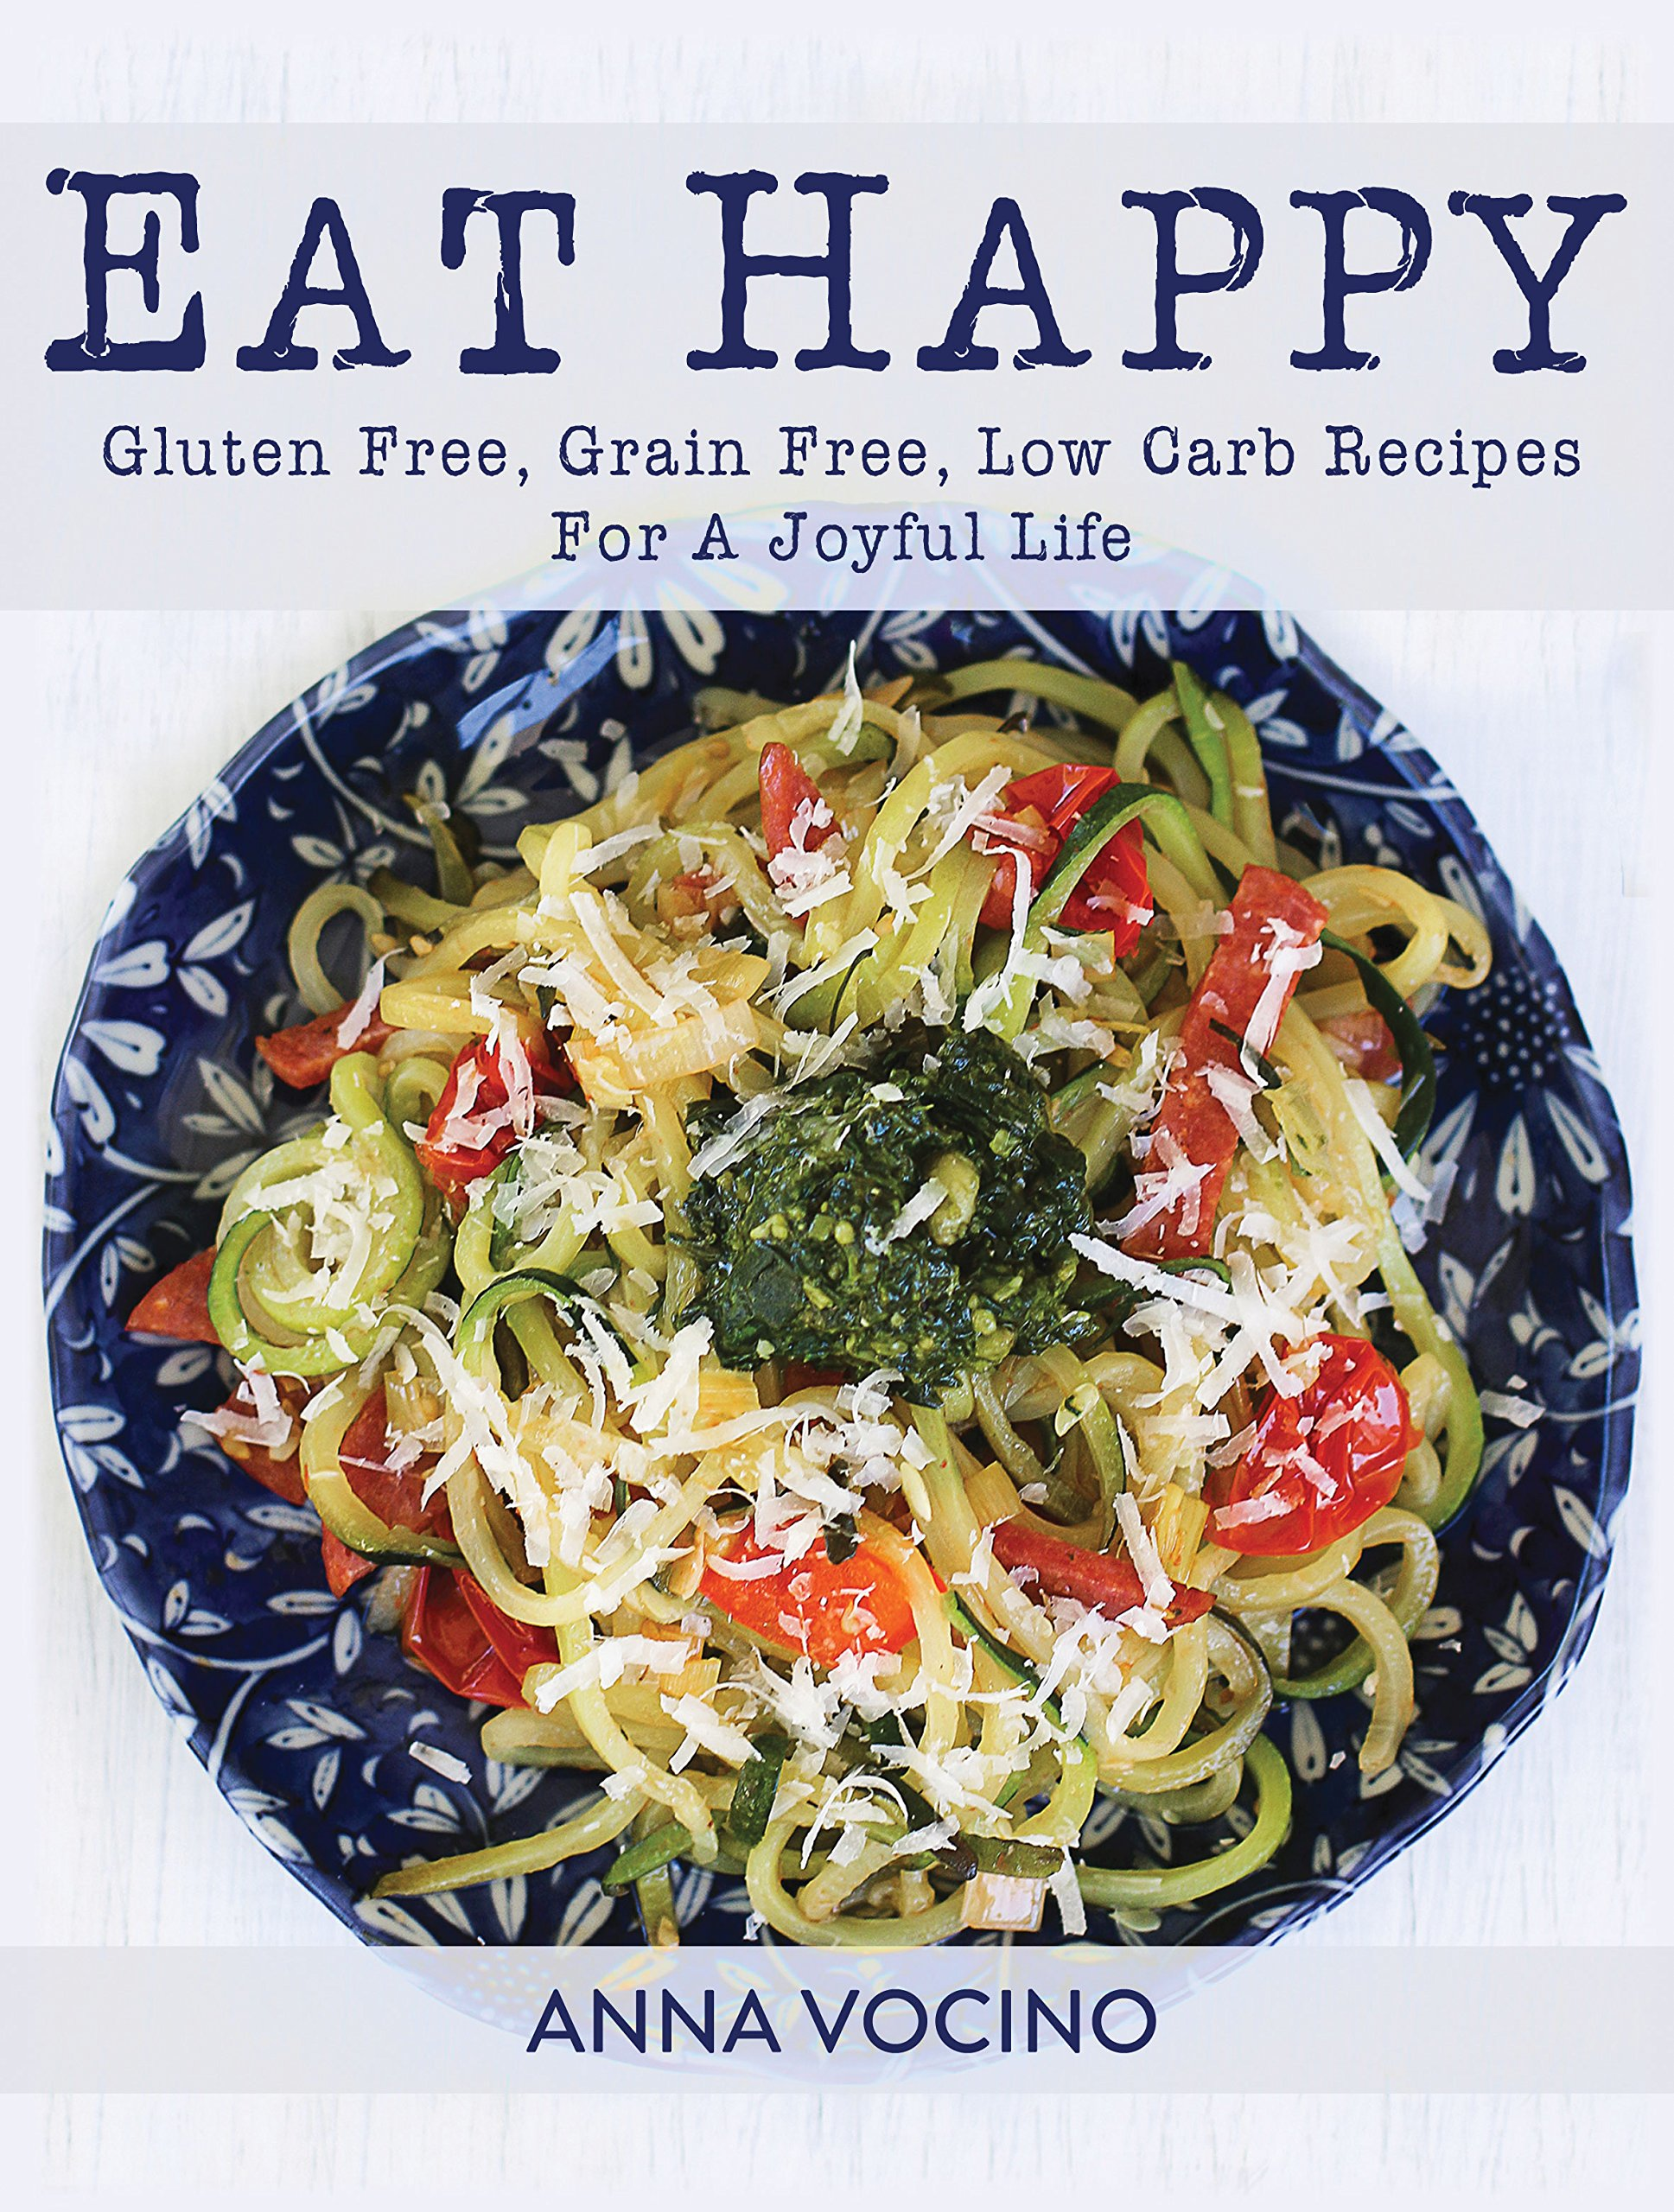 Eat Happy: Gluten Free, Grain Free, Low Carb Recipes Made from Real Foods For A Joyful Life by Telemachus Press, LLC